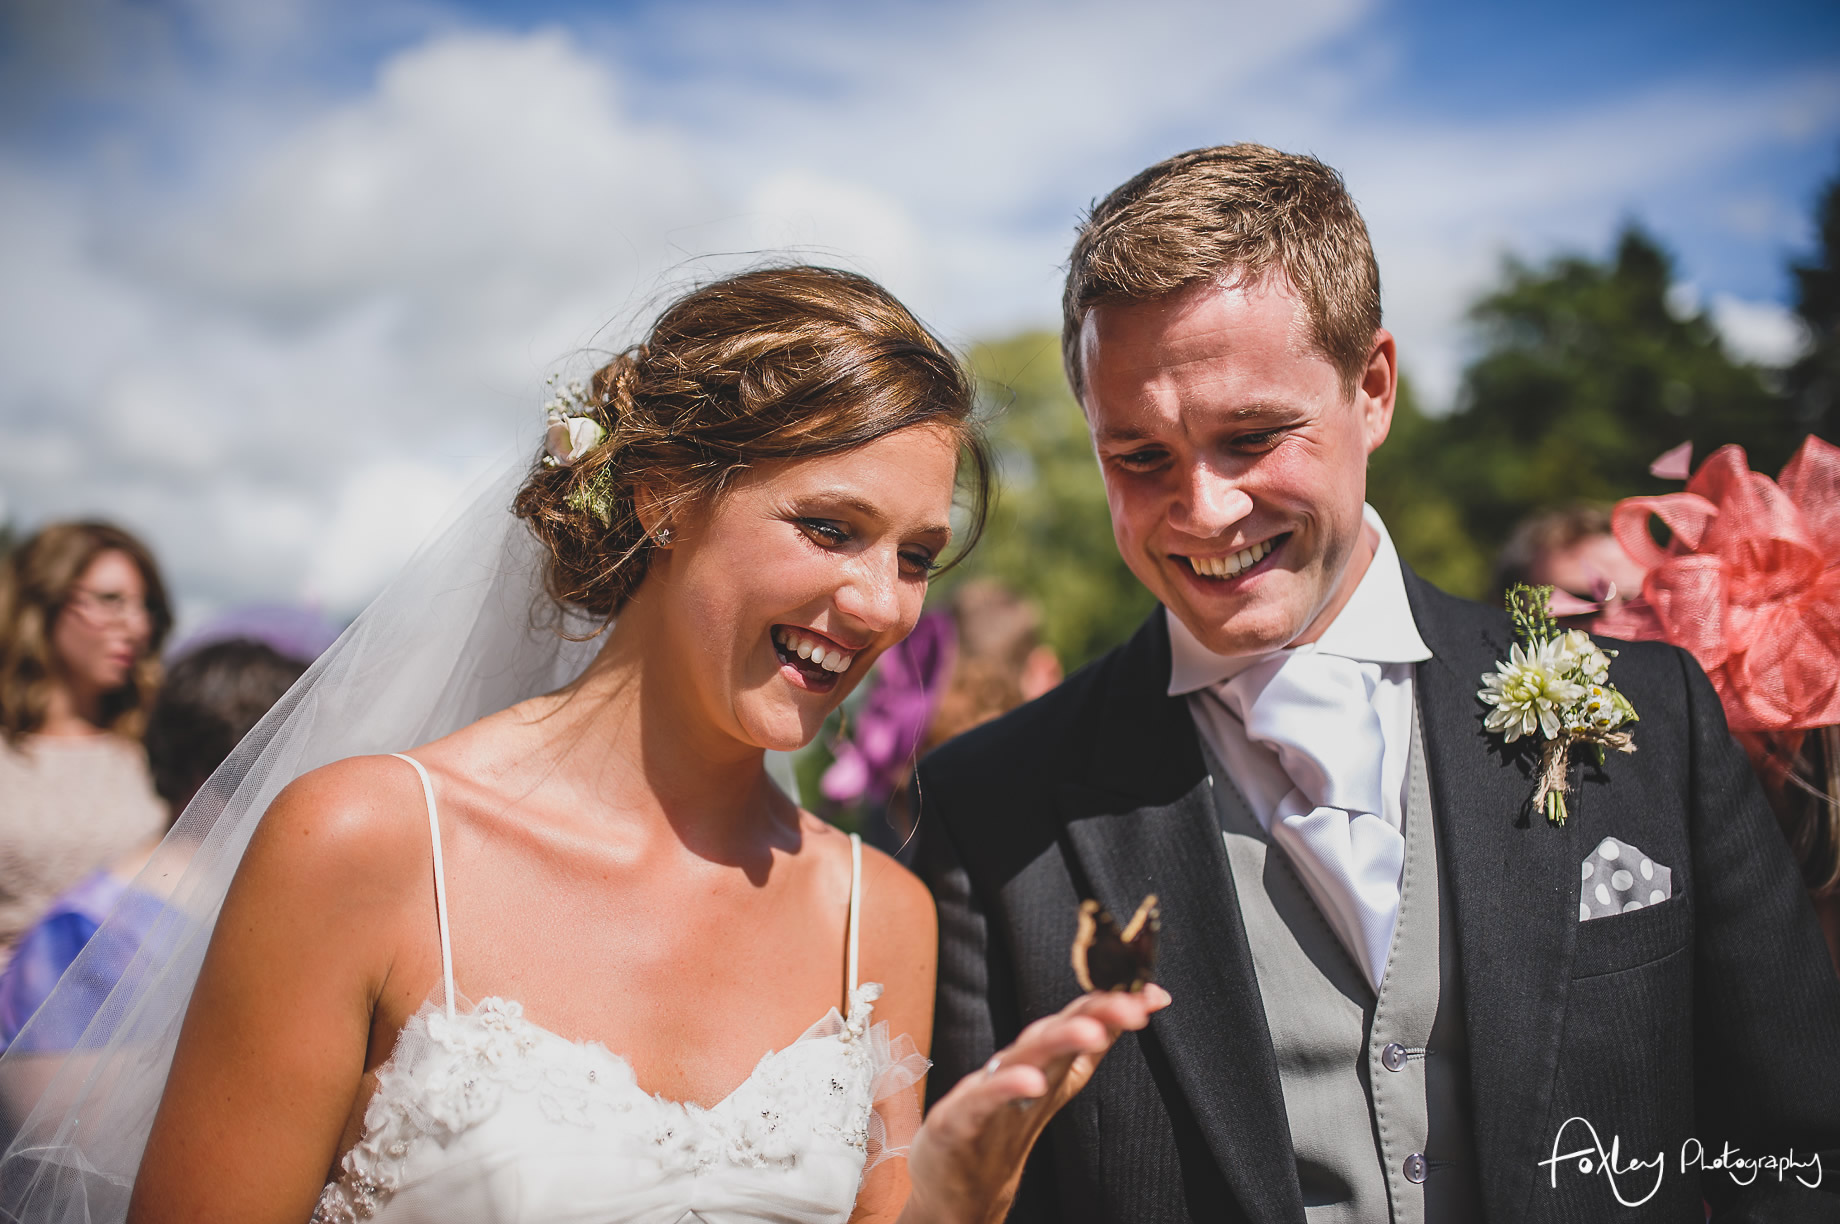 Claire and James' Wedding at Mitton Hall 113